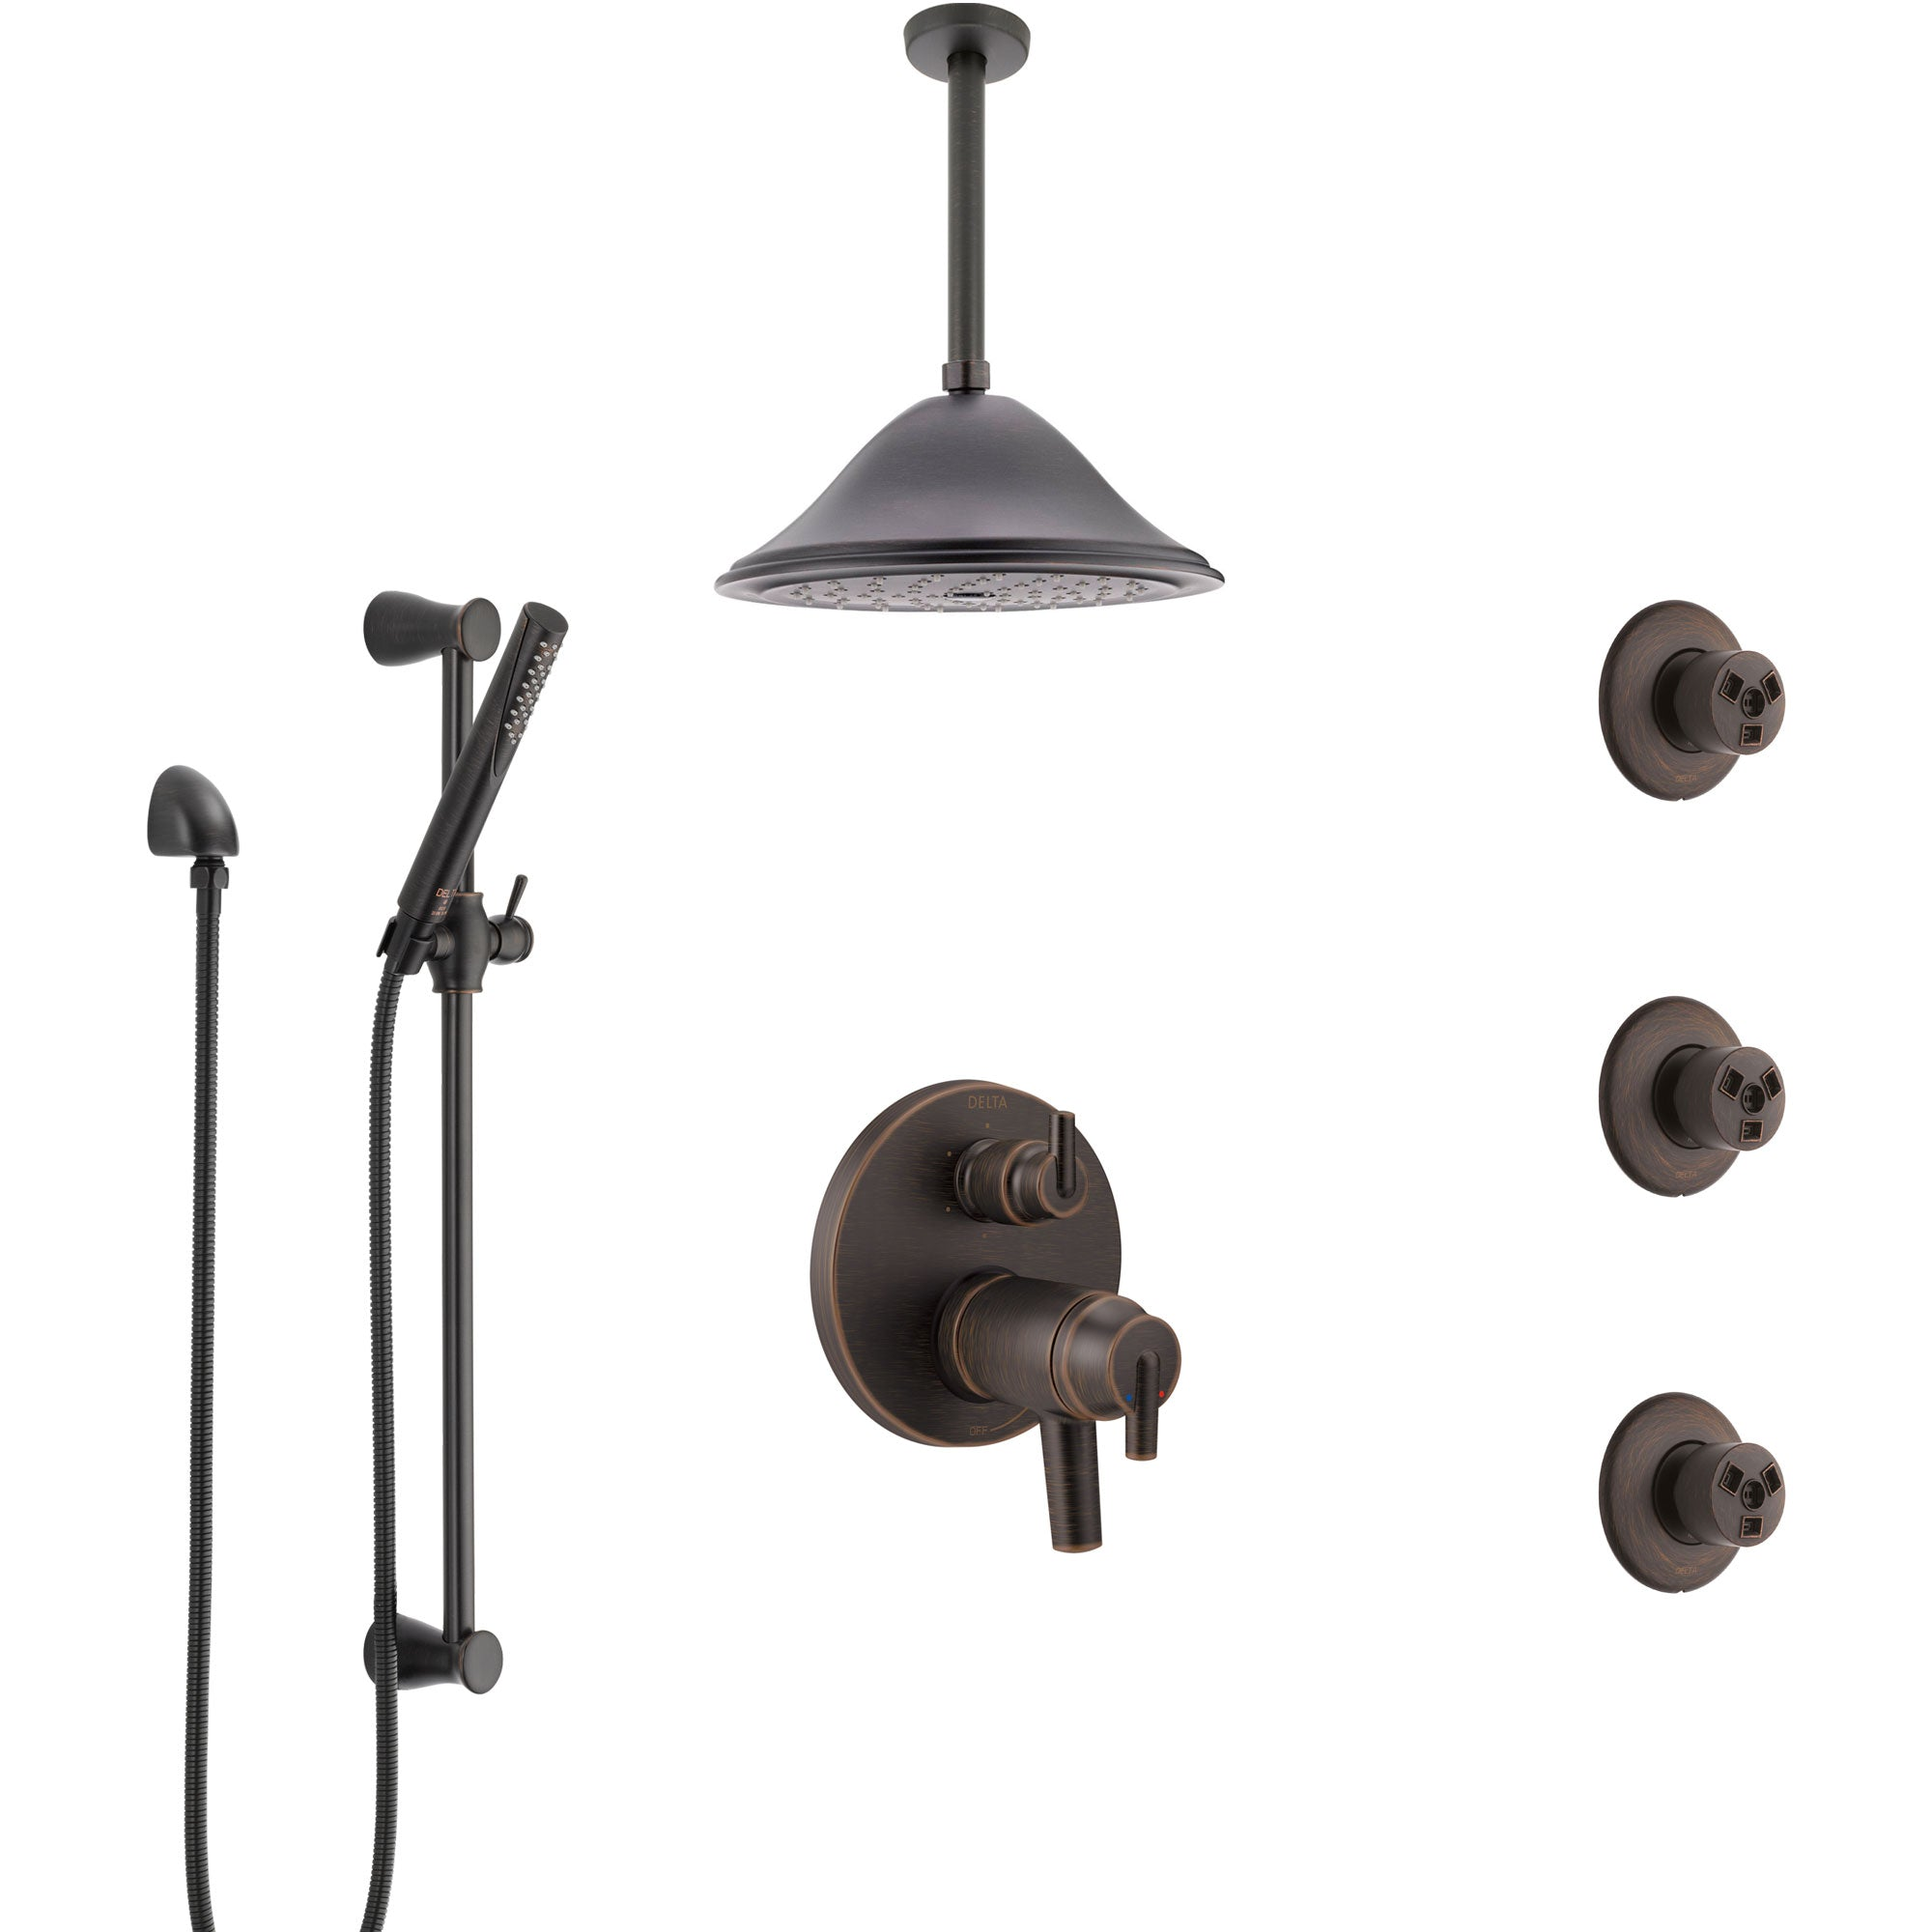 Delta Trinsic Venetian Bronze Dual Thermostatic Control Integrated Diverter Shower System, Ceiling Showerhead, 3 Body Sprays, Hand Spray SS27T959RB9